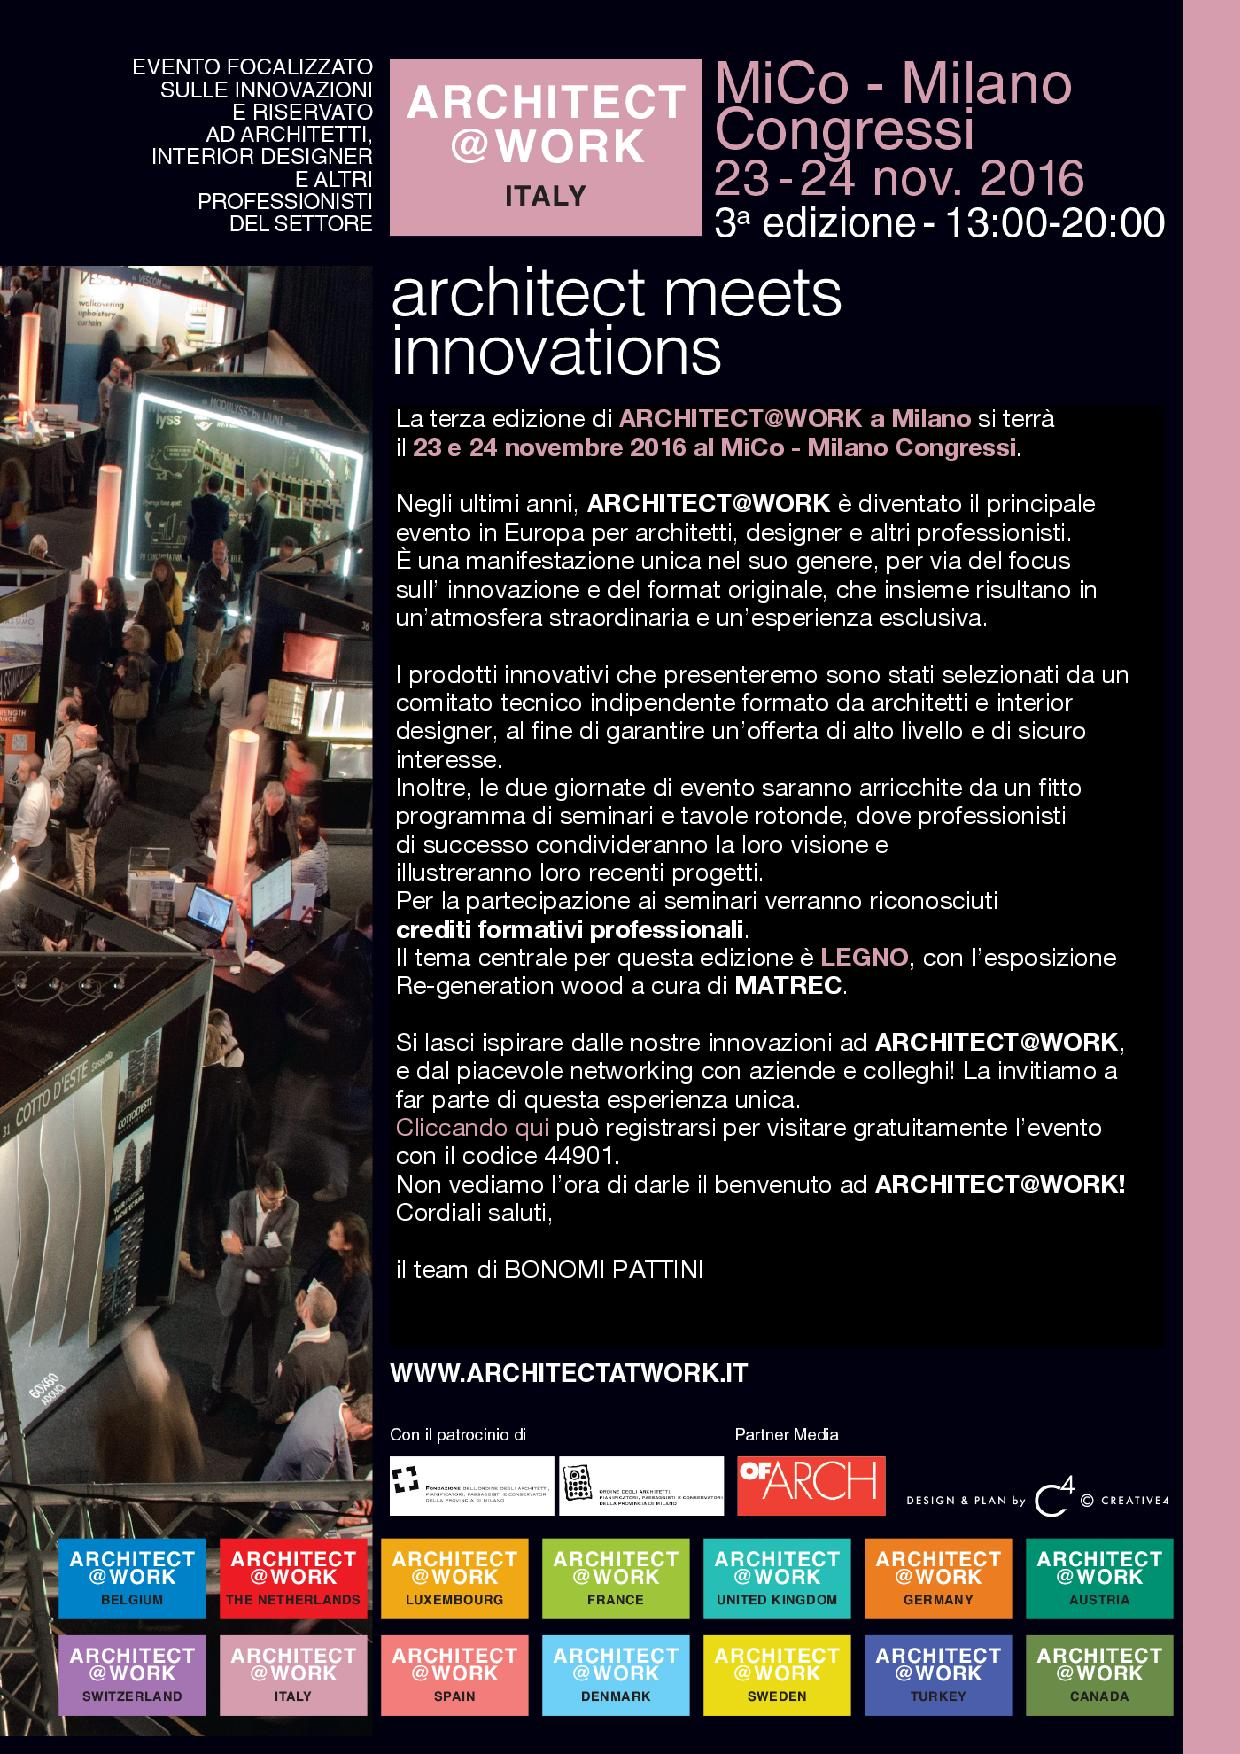 Evento Architect@Work MiCo – Milano Congressi 23-24 novembre 2016